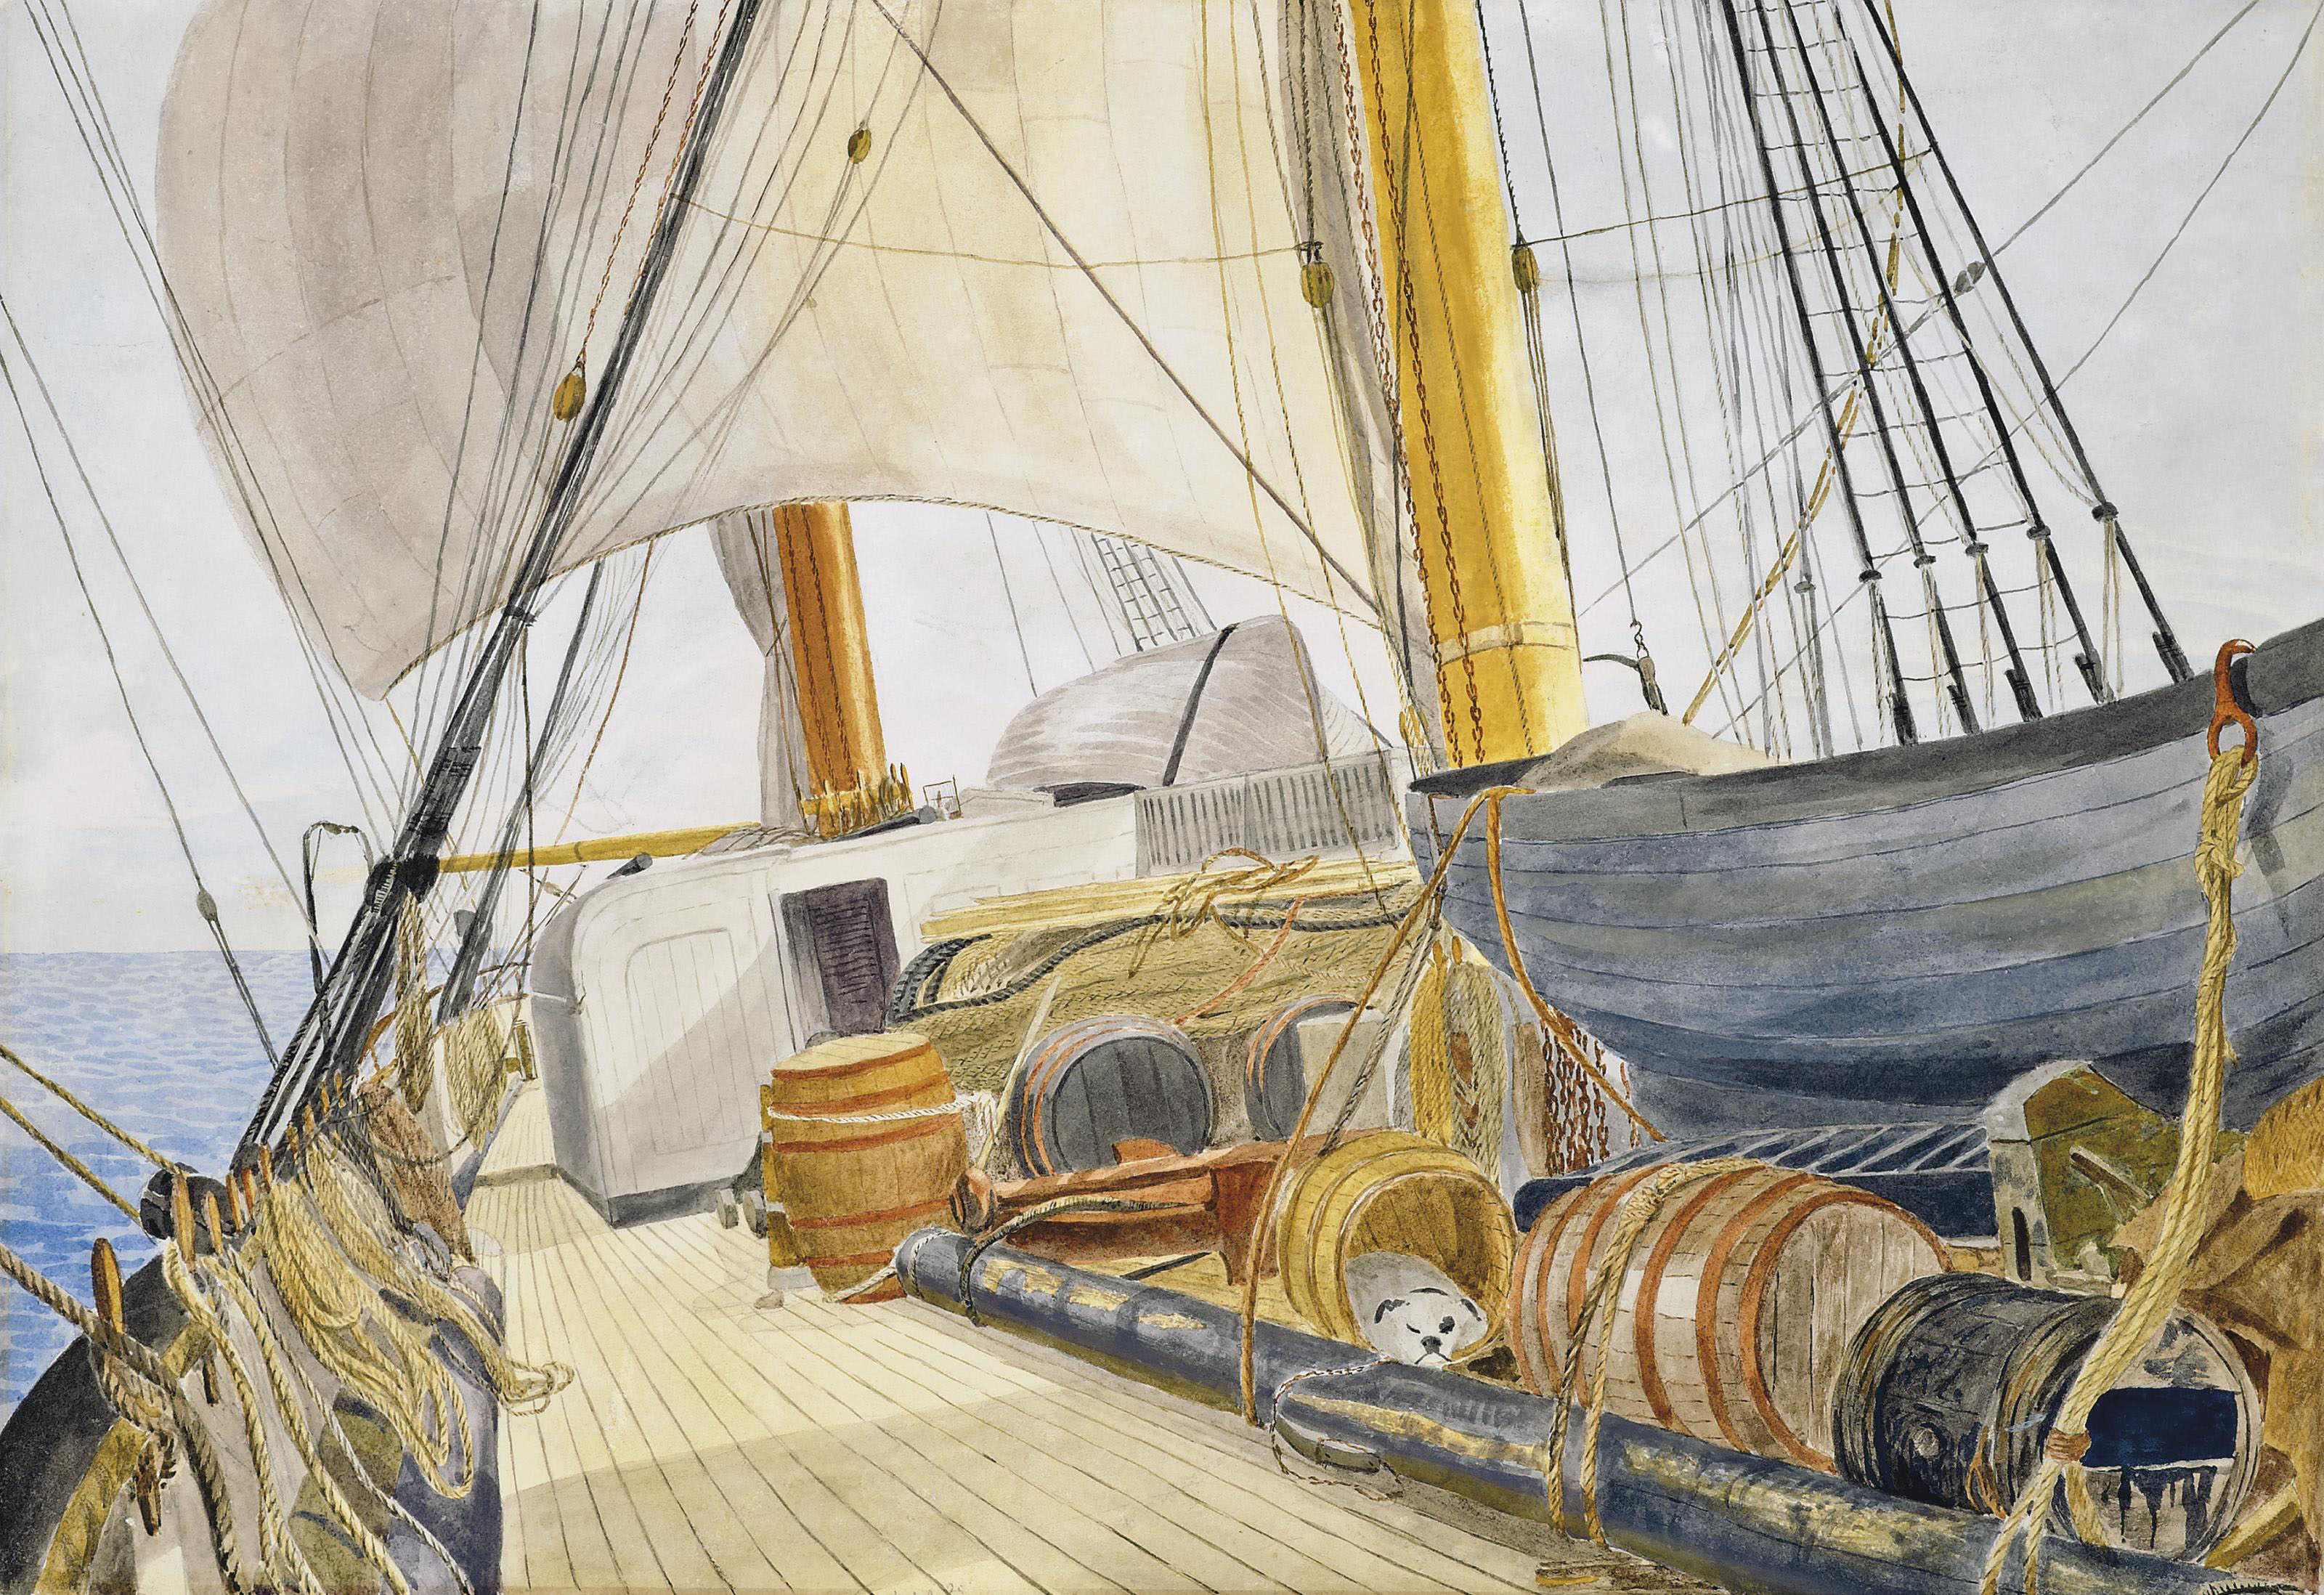 Evening prayers on an emigrant ship; and Crossing the ocean to distant lands (illustrated)